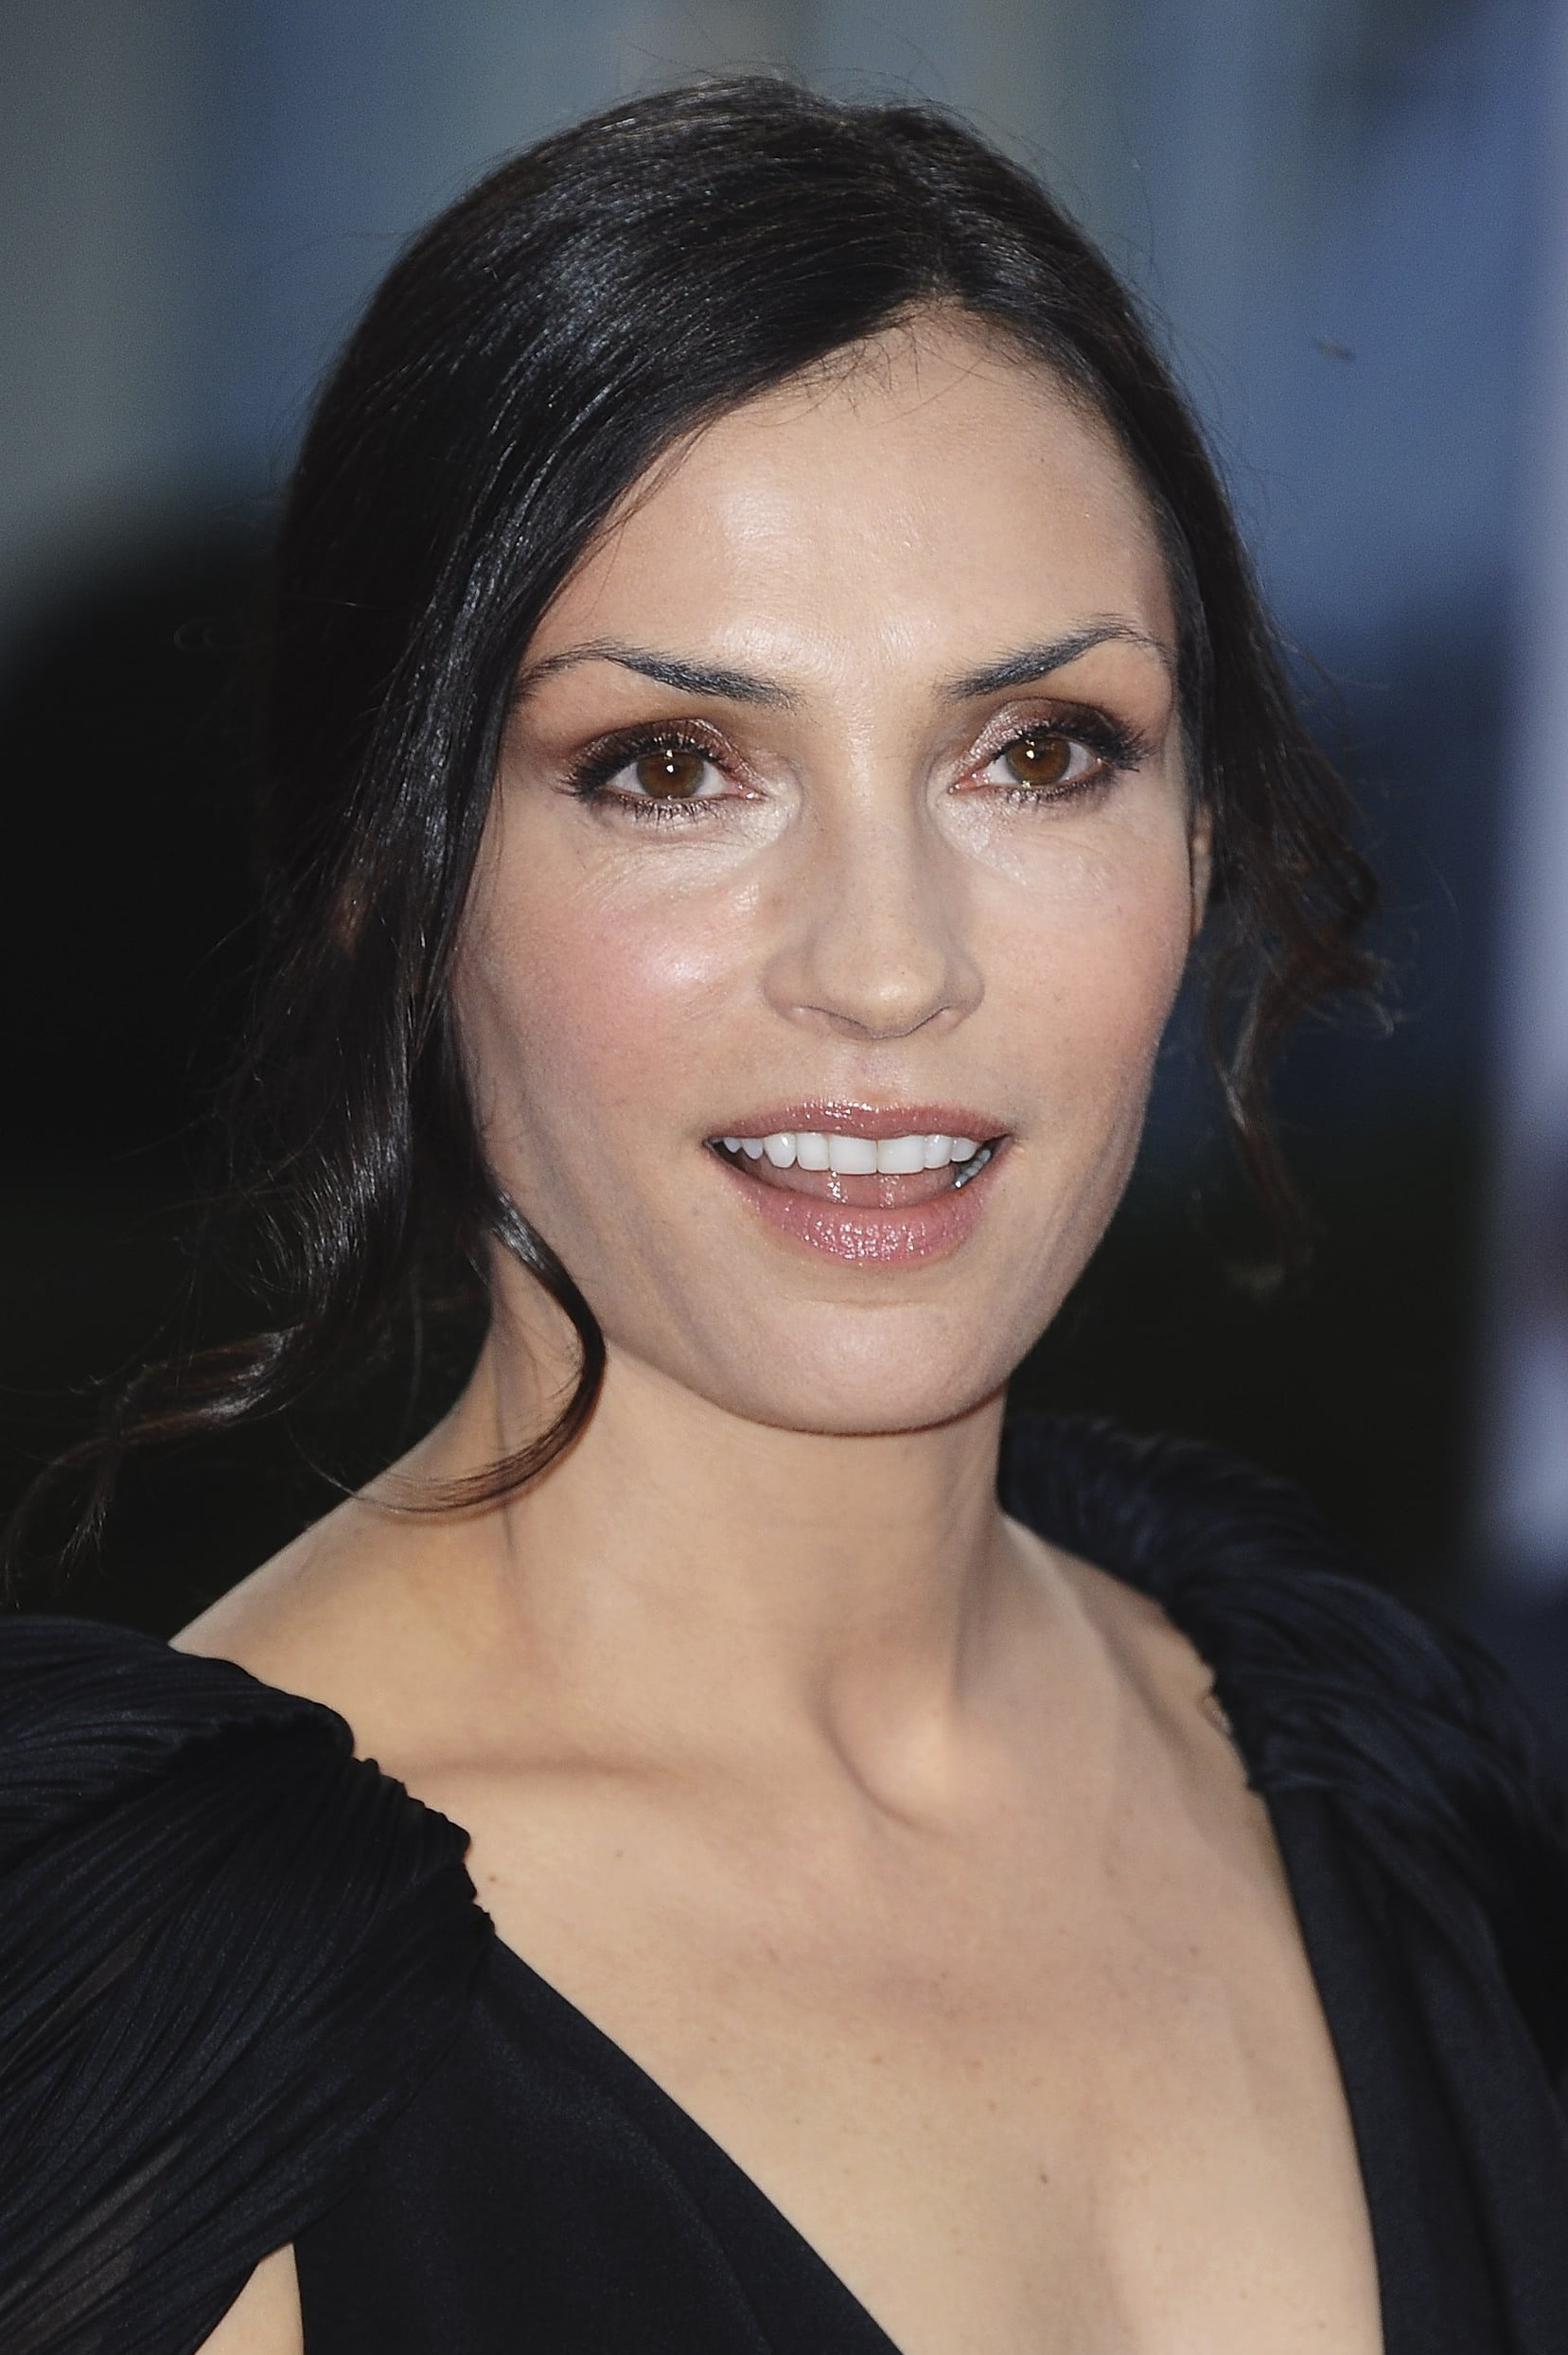 Famke Janssen nudes (59 photo), fotos Bikini, Twitter, braless 2018